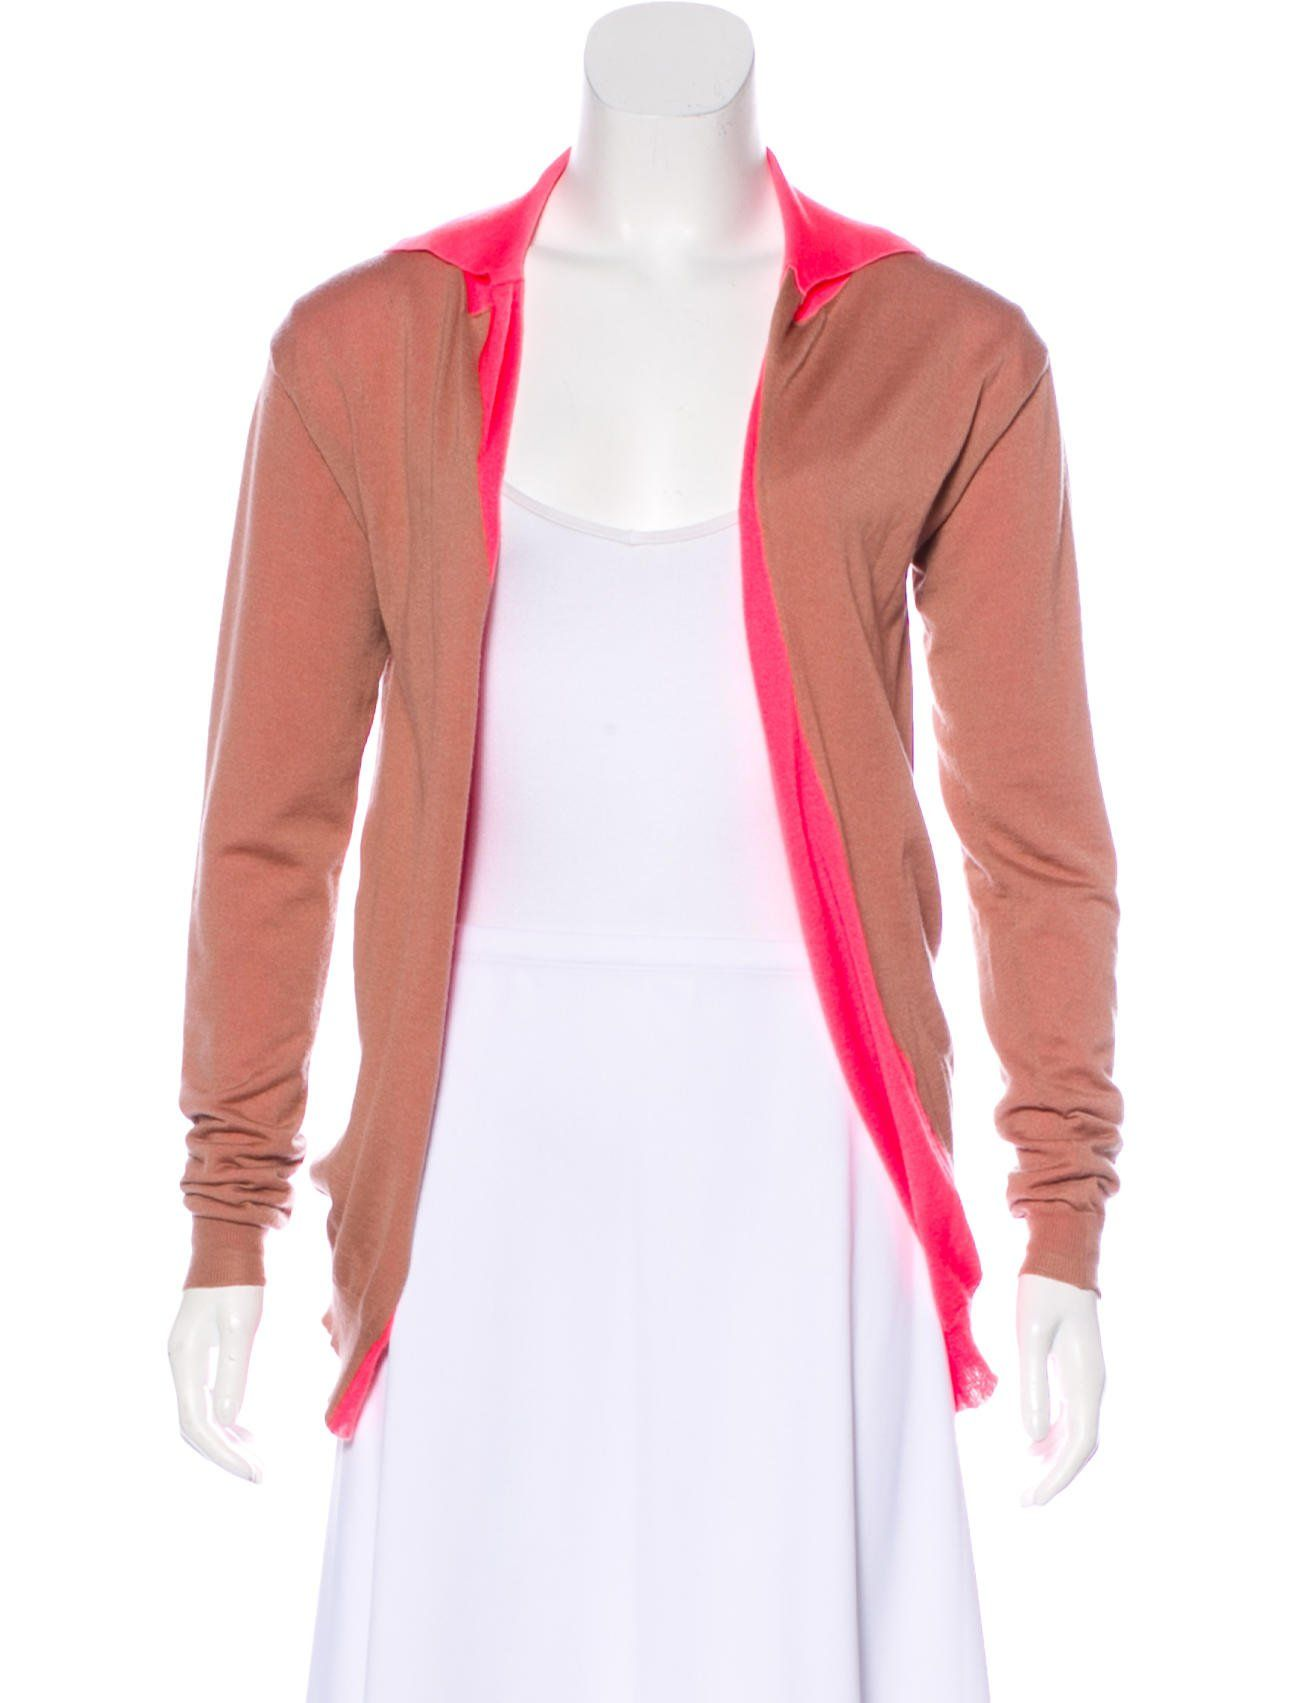 a772895414f6ae Coral and pink Marni cashmere lightweight knit reversible cardigan with  pointed collar, long sleeves and open front.